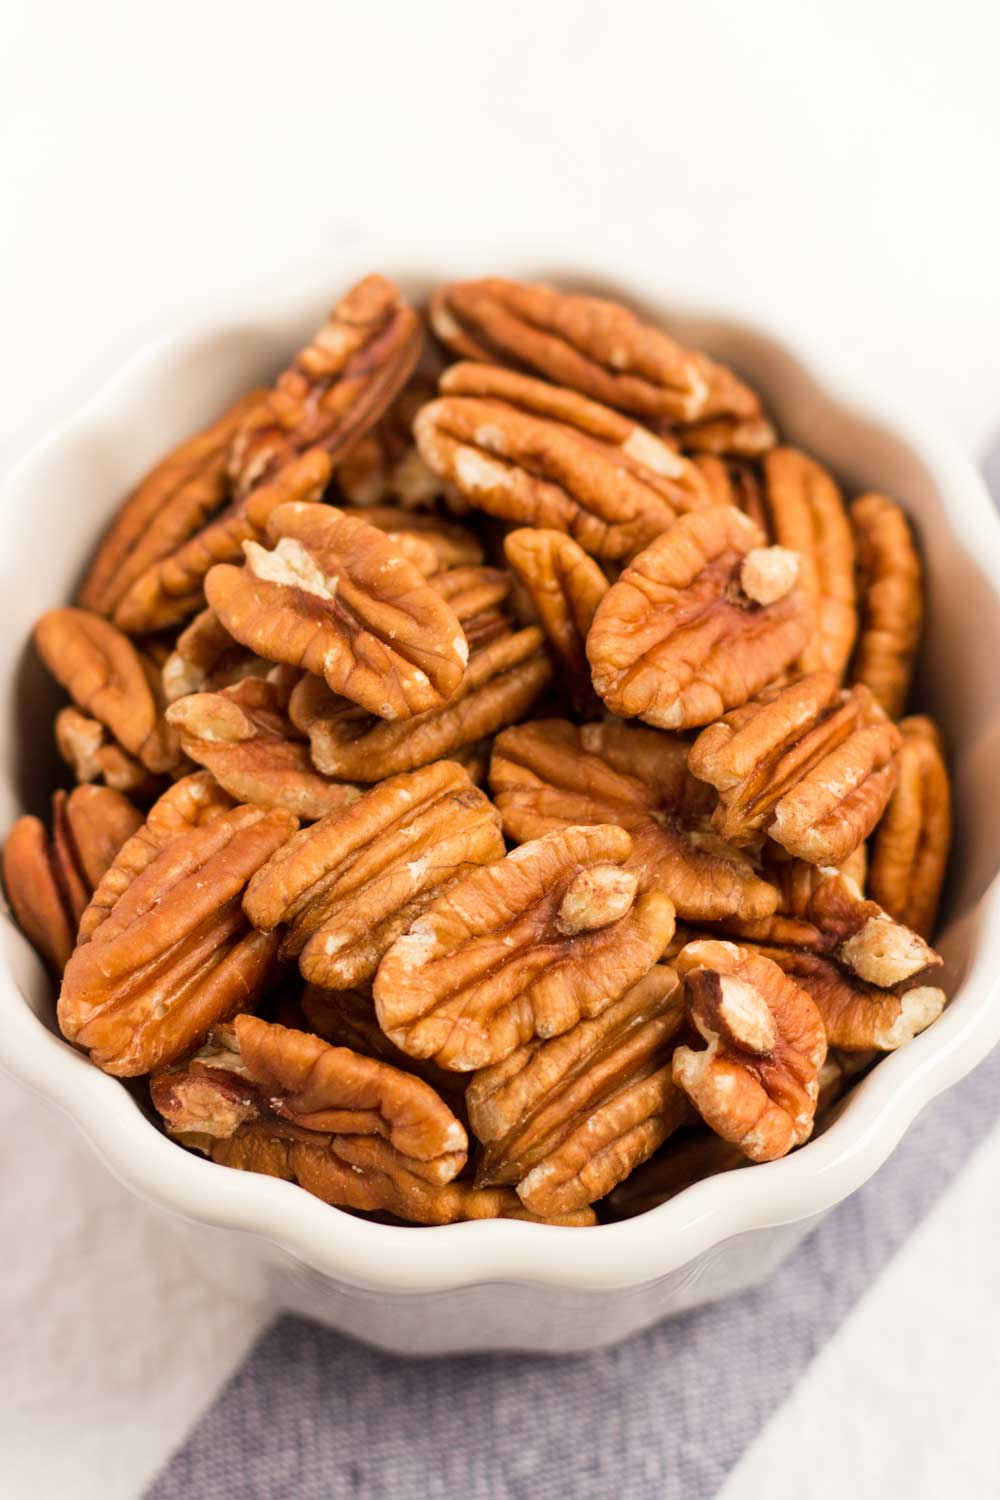 Main ingredient for Candied Pecan recipe.